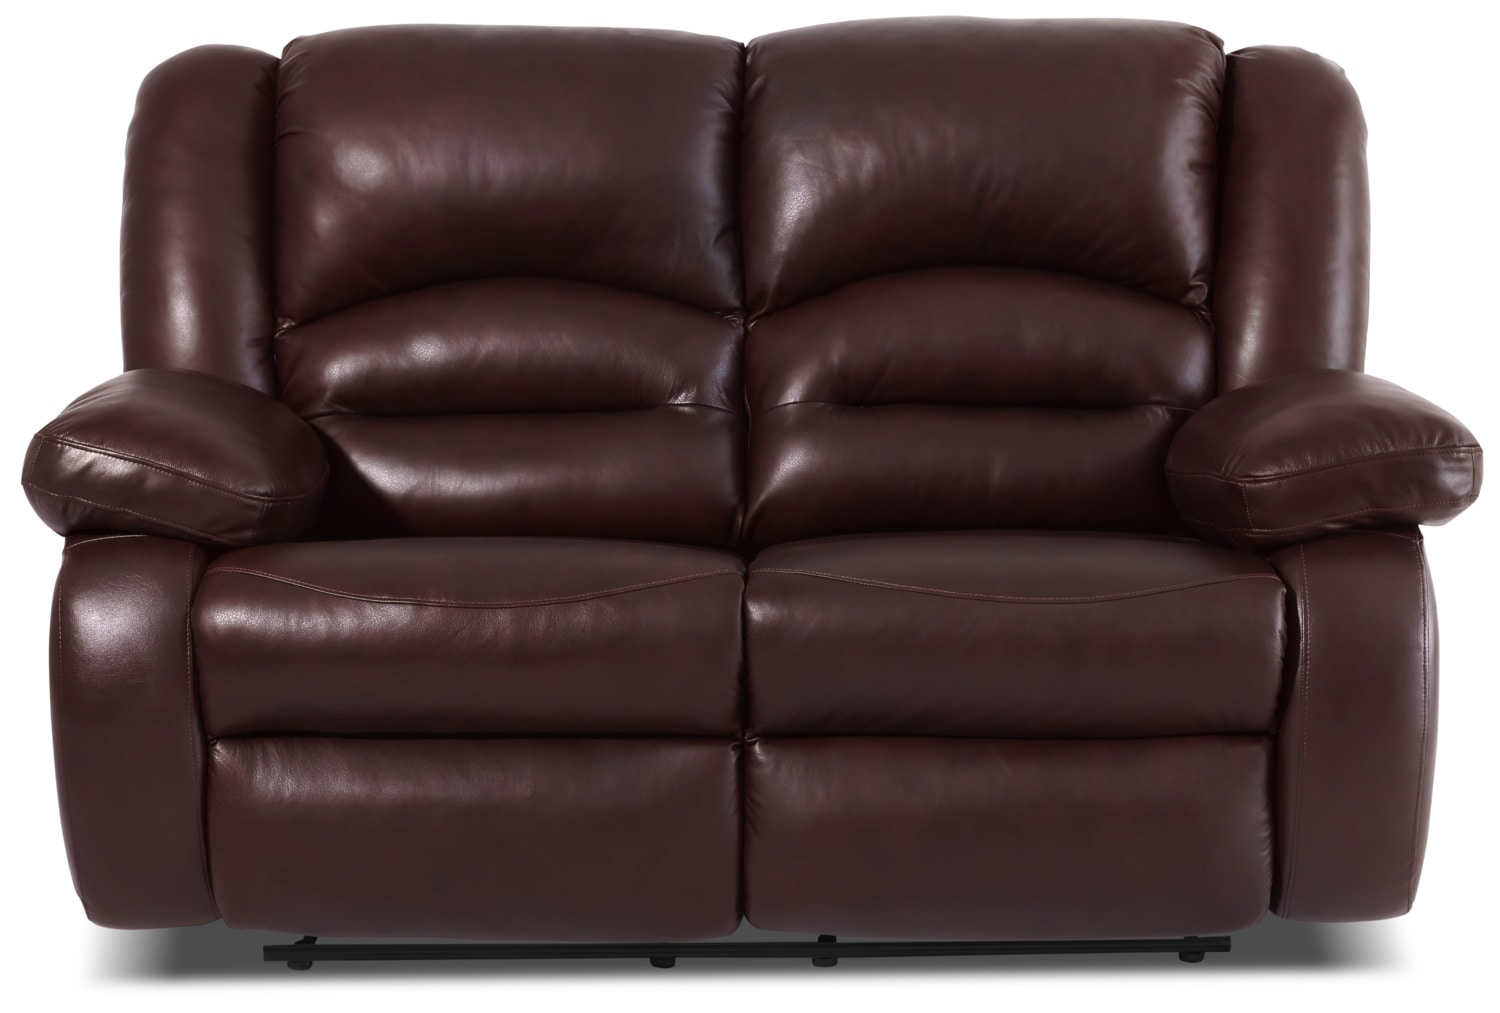 Toreno Genuine Leather Reclining Loveseat – Burgundy